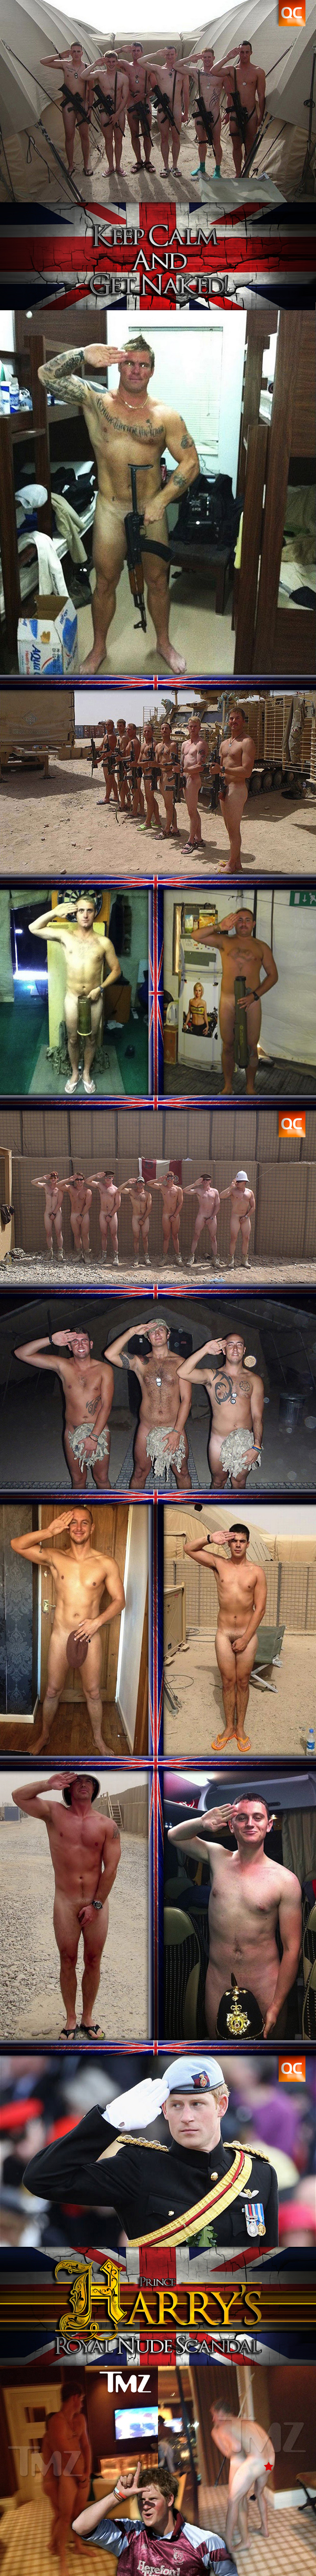 Soldiers Get Naked In Support Of Prince Harry